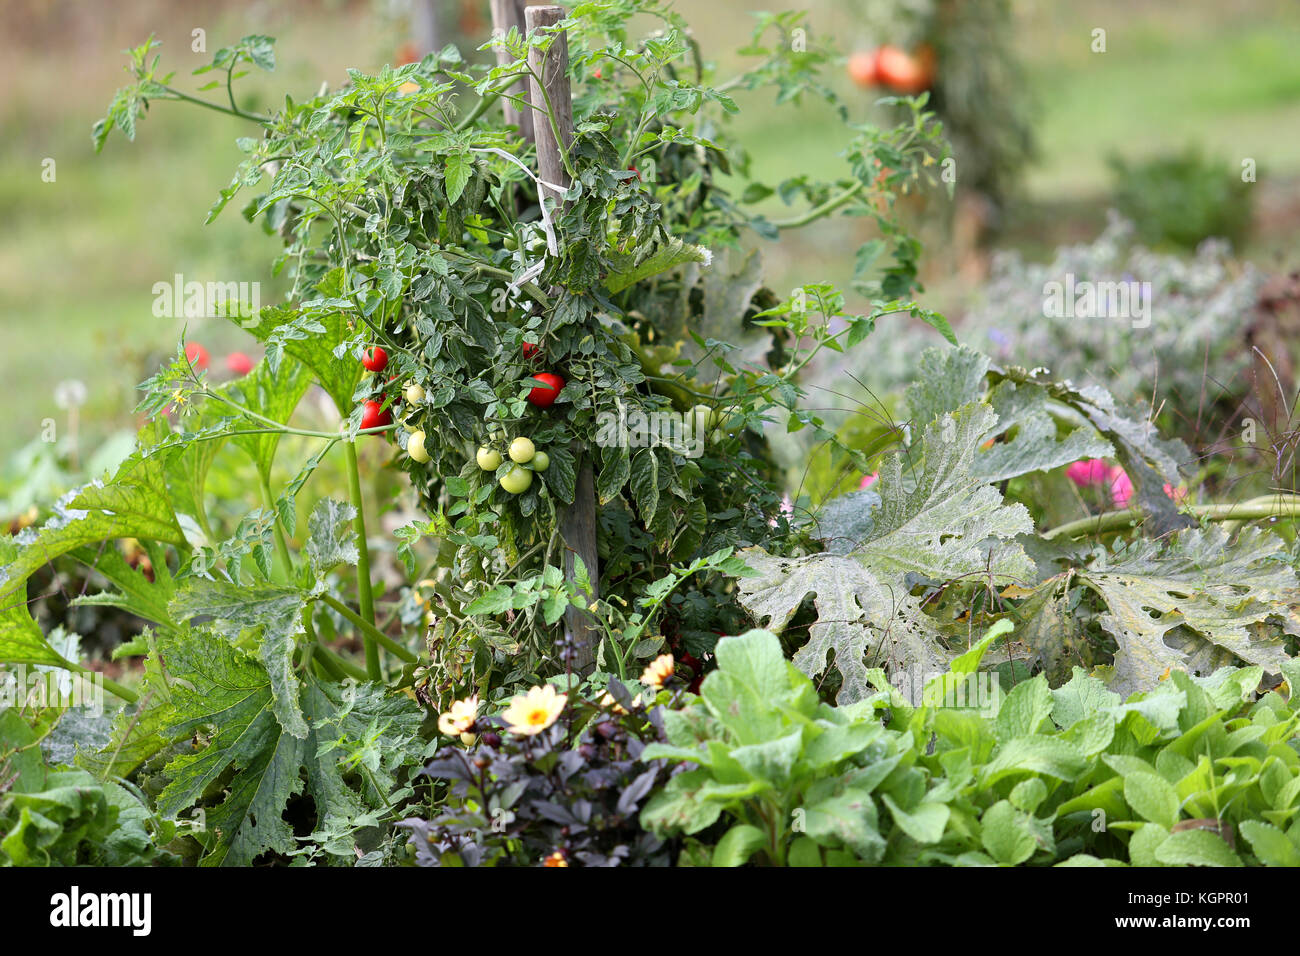 Closeup of tomatoes in kitchen garden - Stock Image